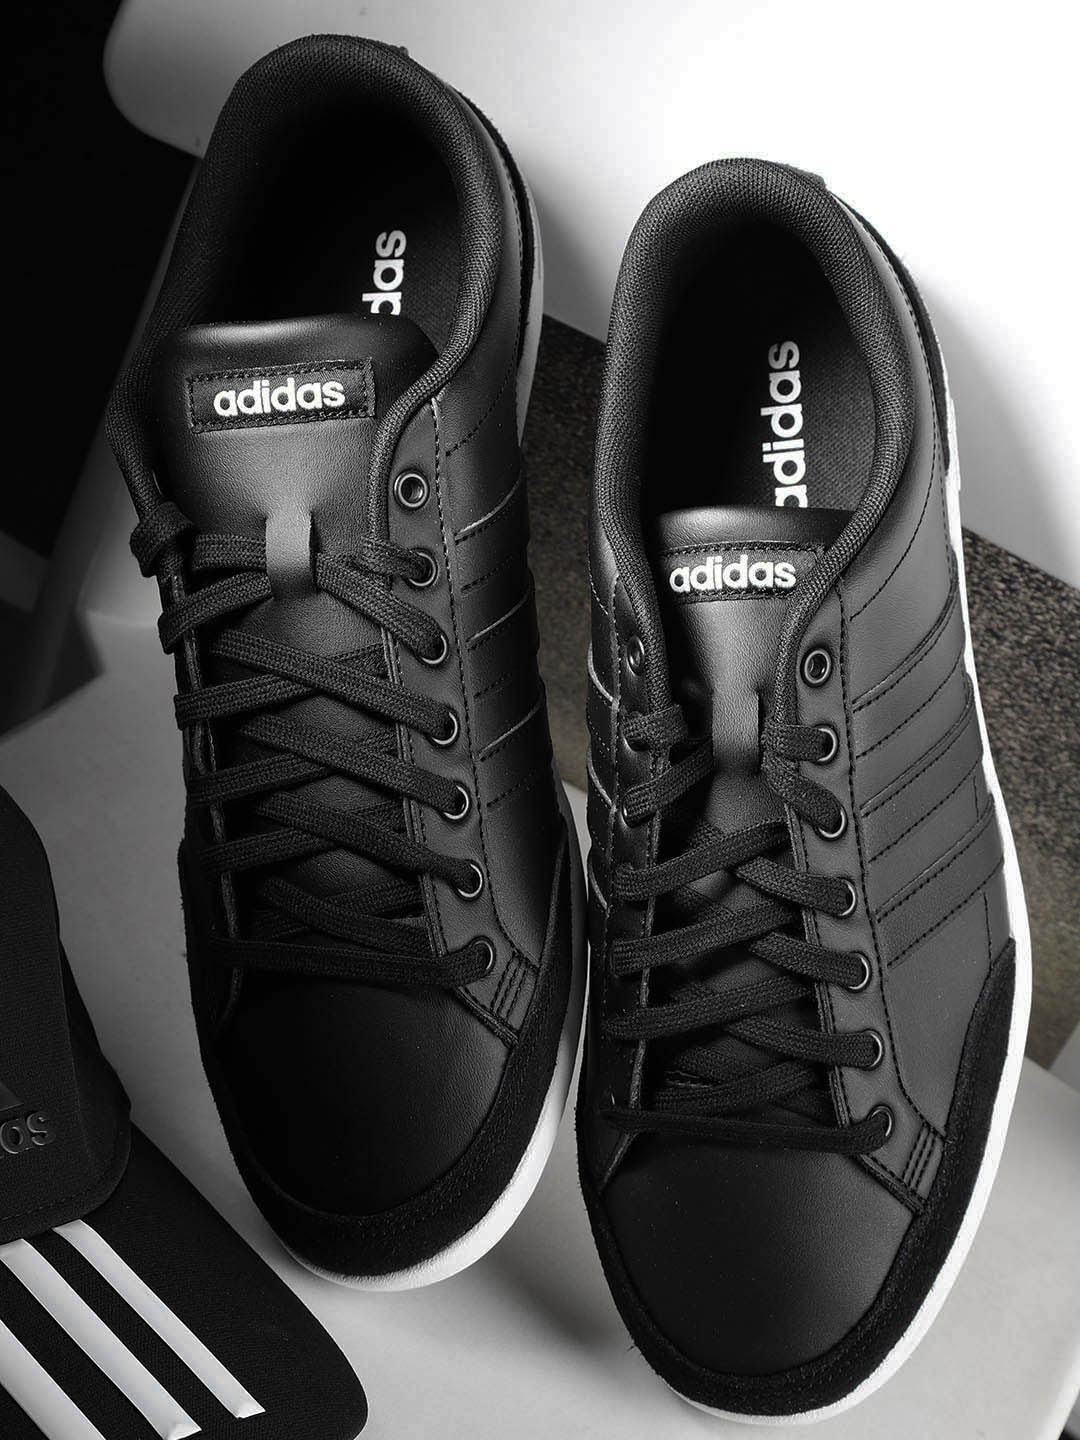 7d4d4b4b66c7b5 Adidas Shoes - Buy Adidas Shoes for Men   Women Online - Myntra